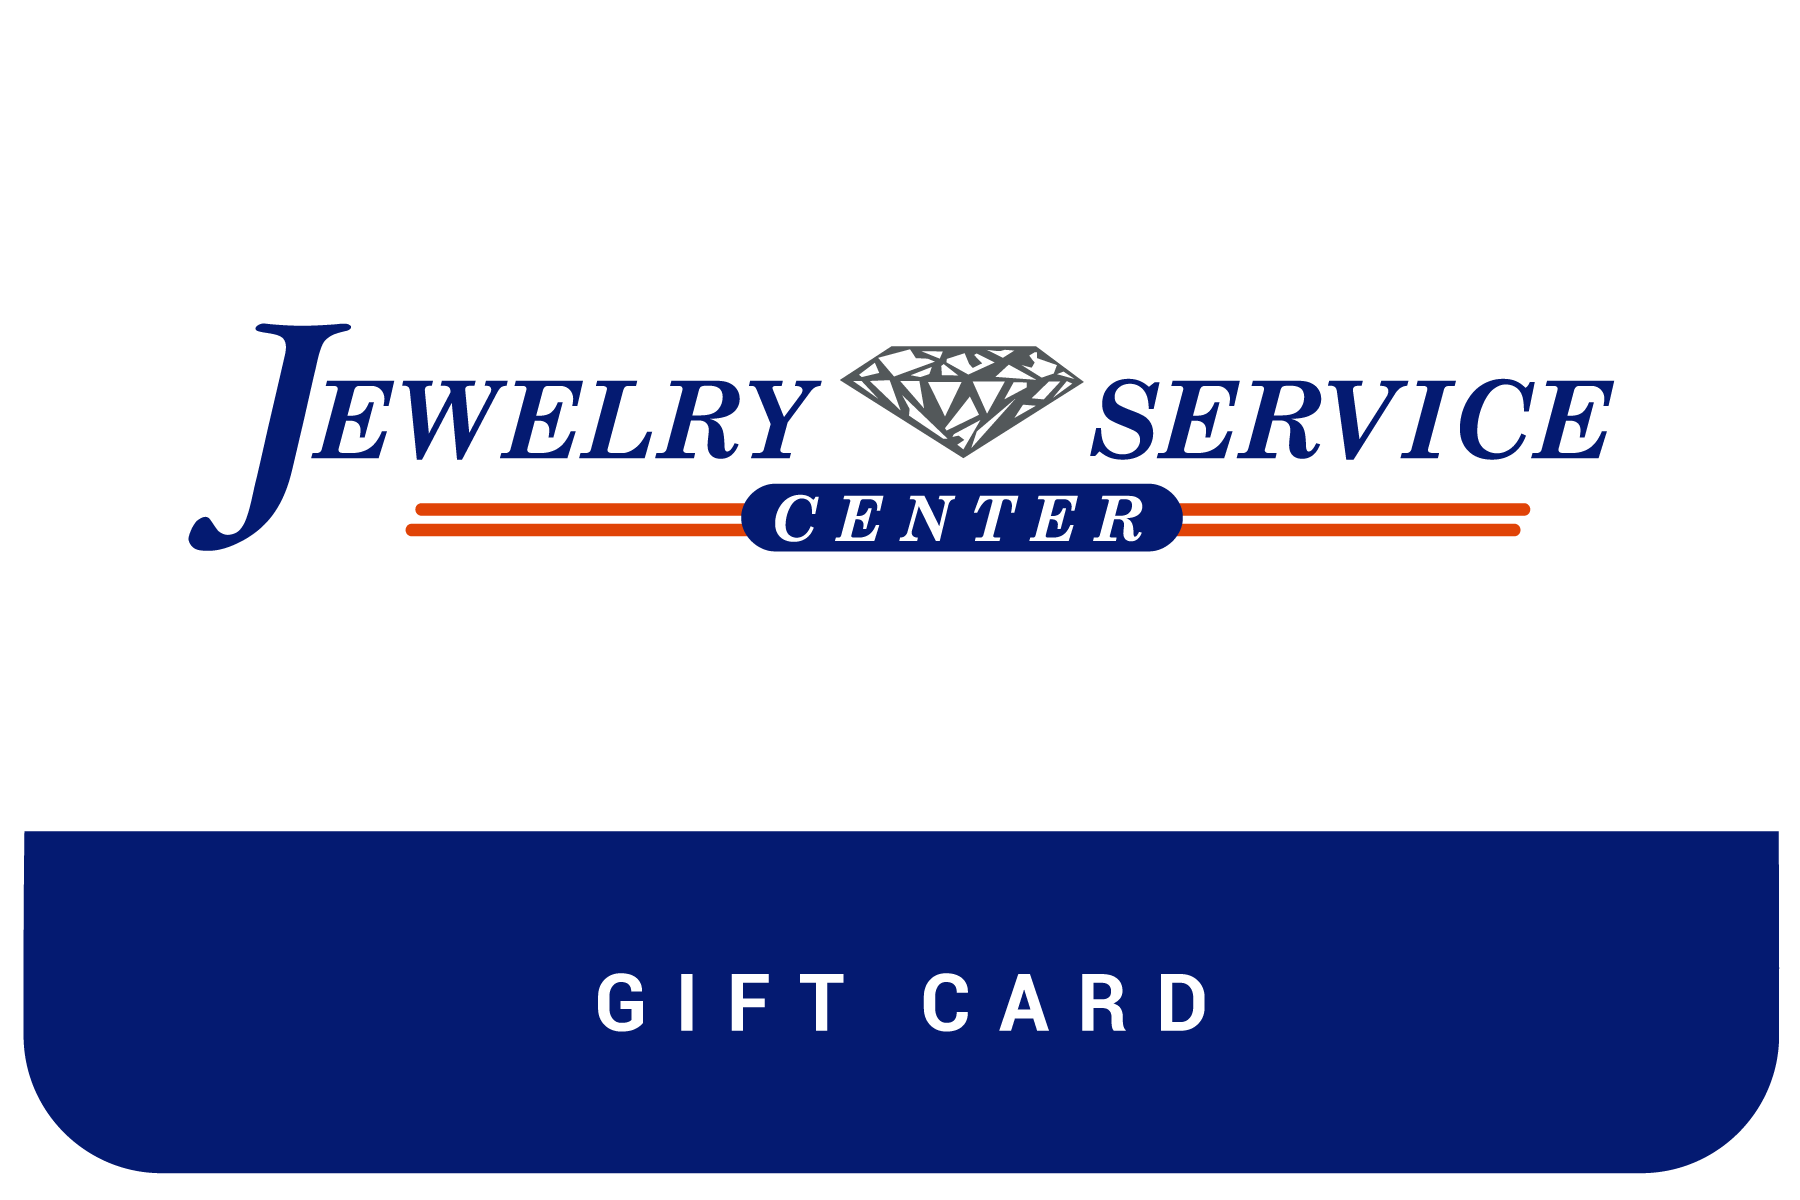 Jewelry Service Center $250 Gift Card